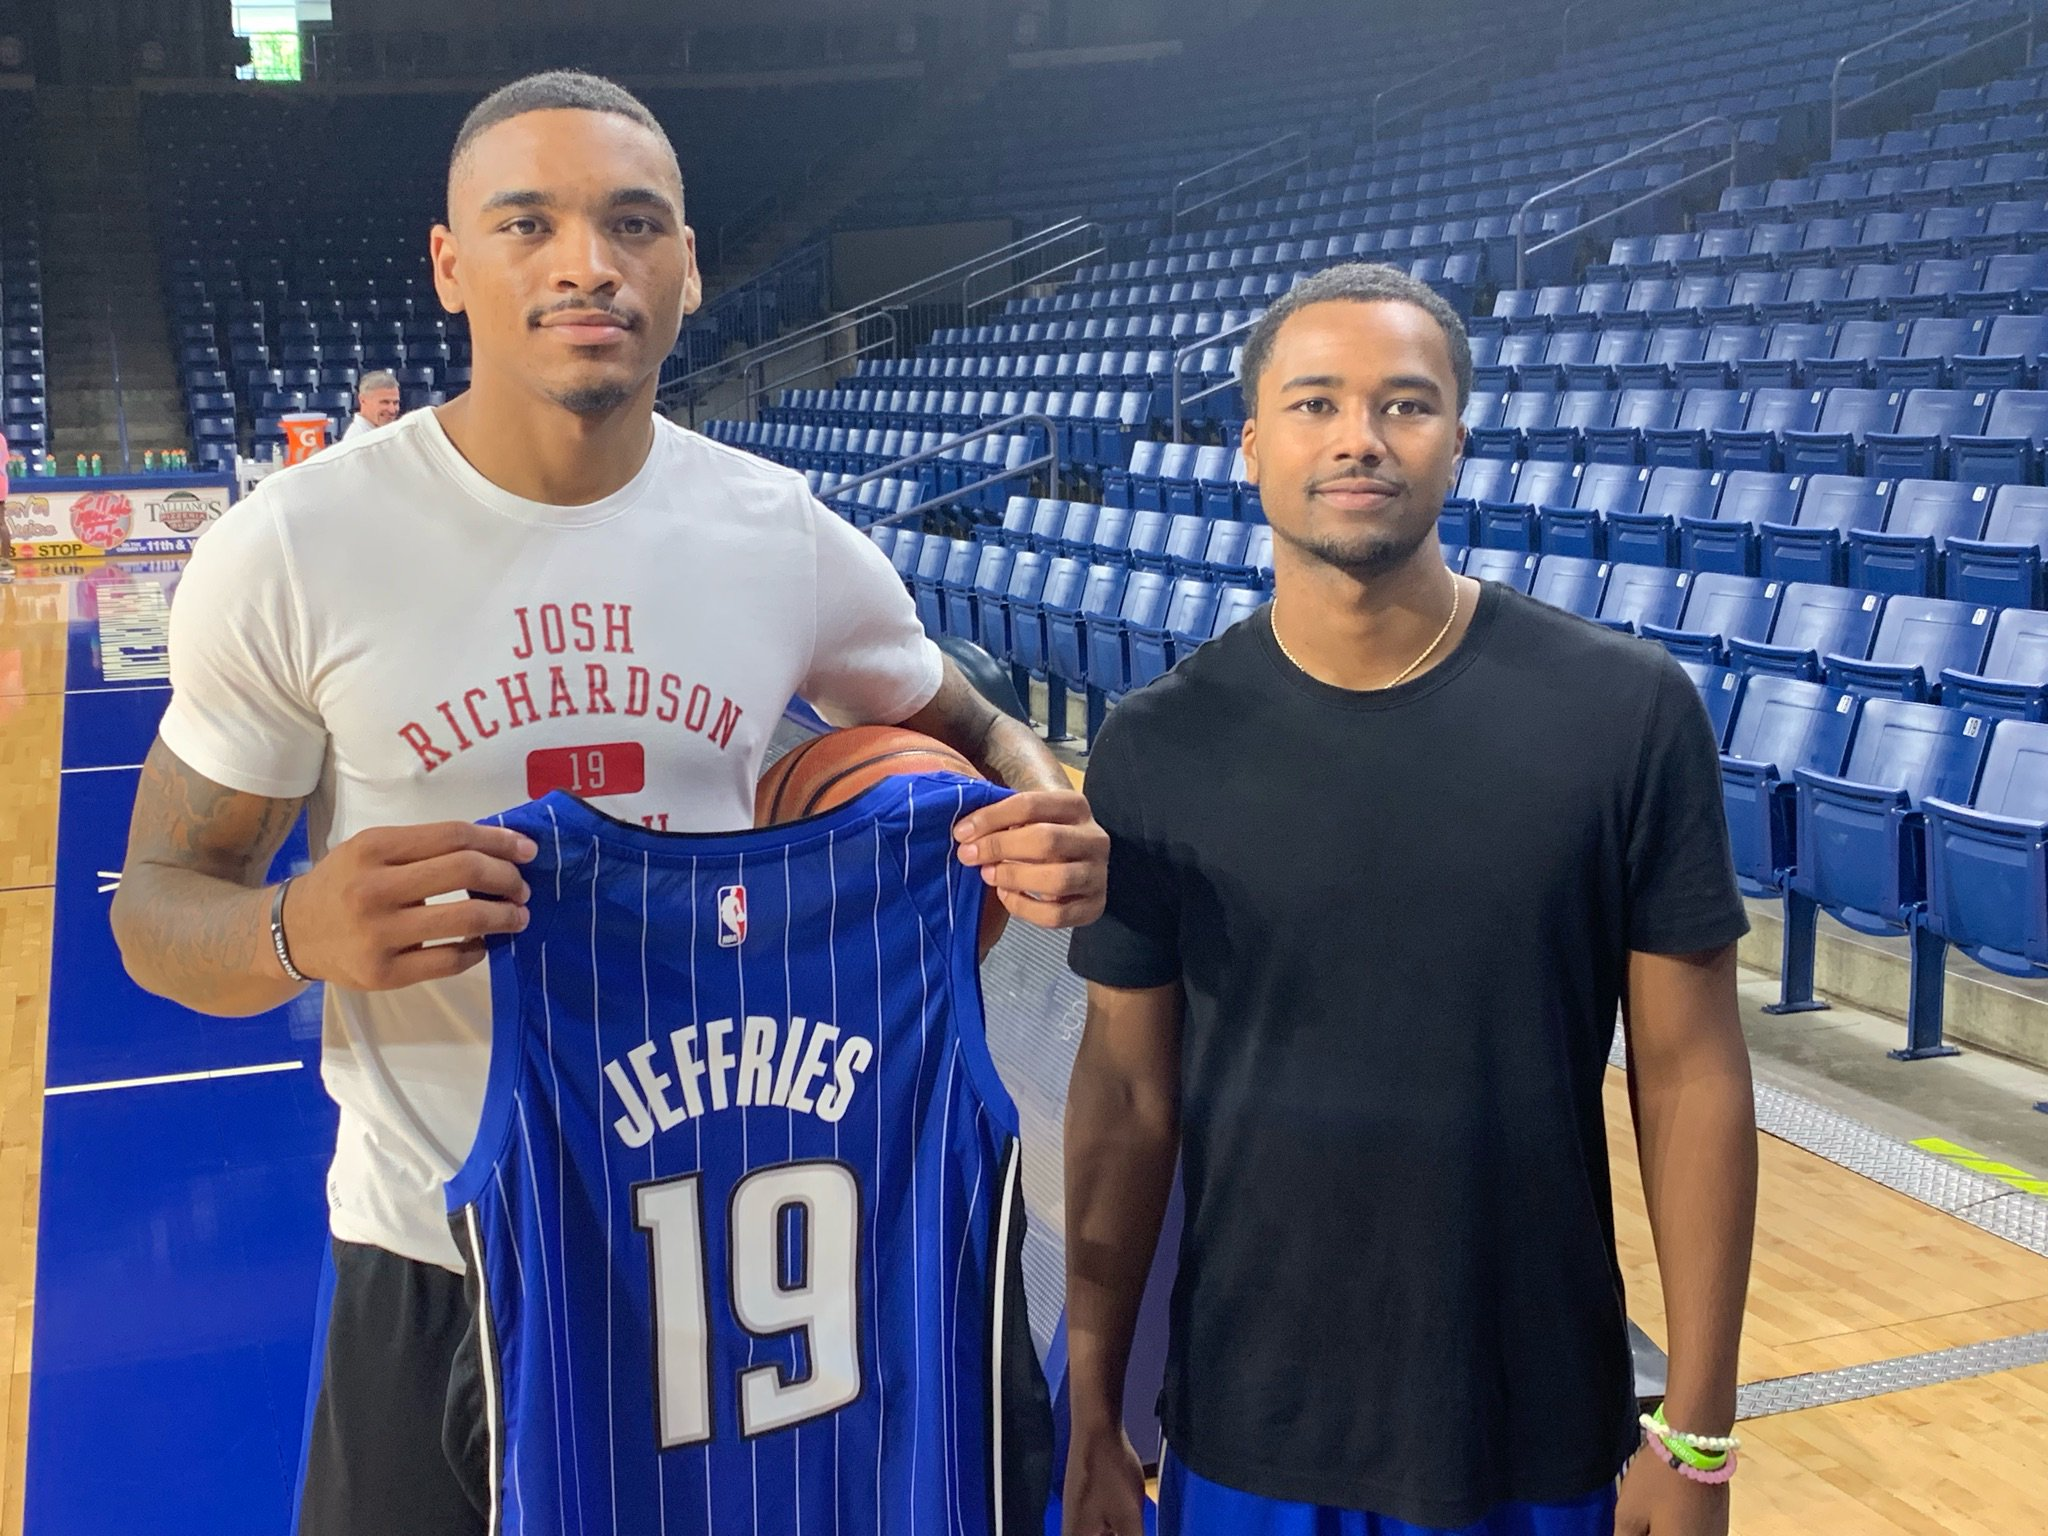 Tulsa Golden Hurricane NCAA Basketball: Glad to have @daquan_jeffries back on campus! Best of luck at training camp later this ...